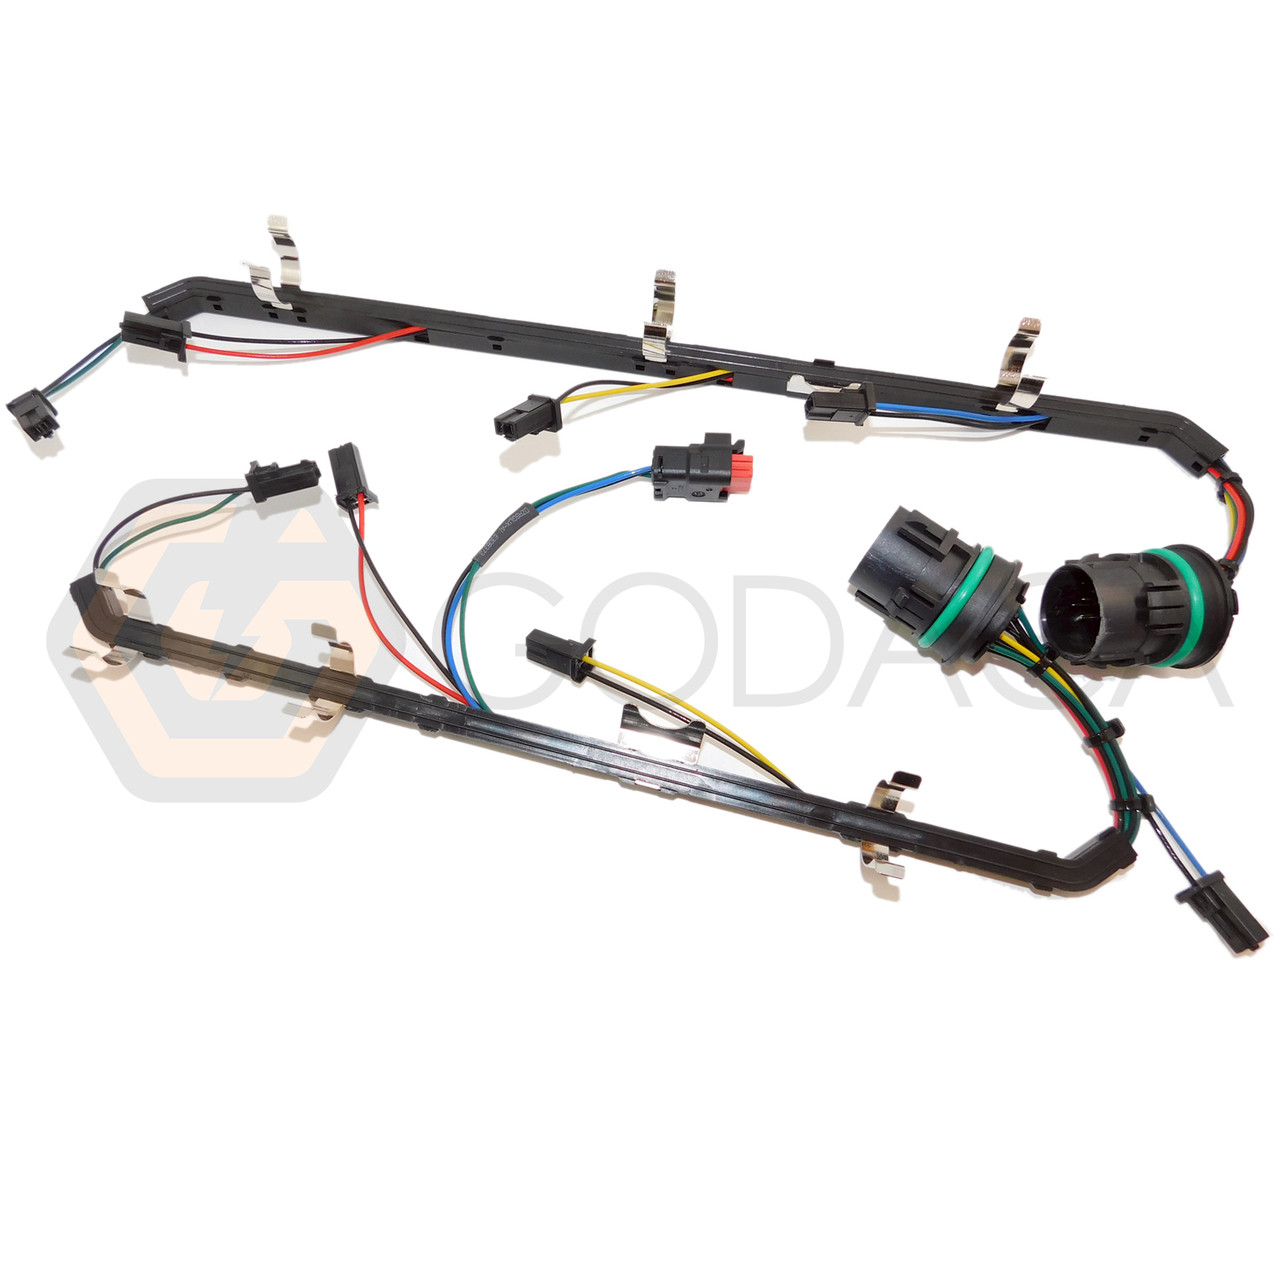 hight resolution of 1x wiring harness for ford fuel injector 08 10 6 4l powerstroke diesel godaca llc